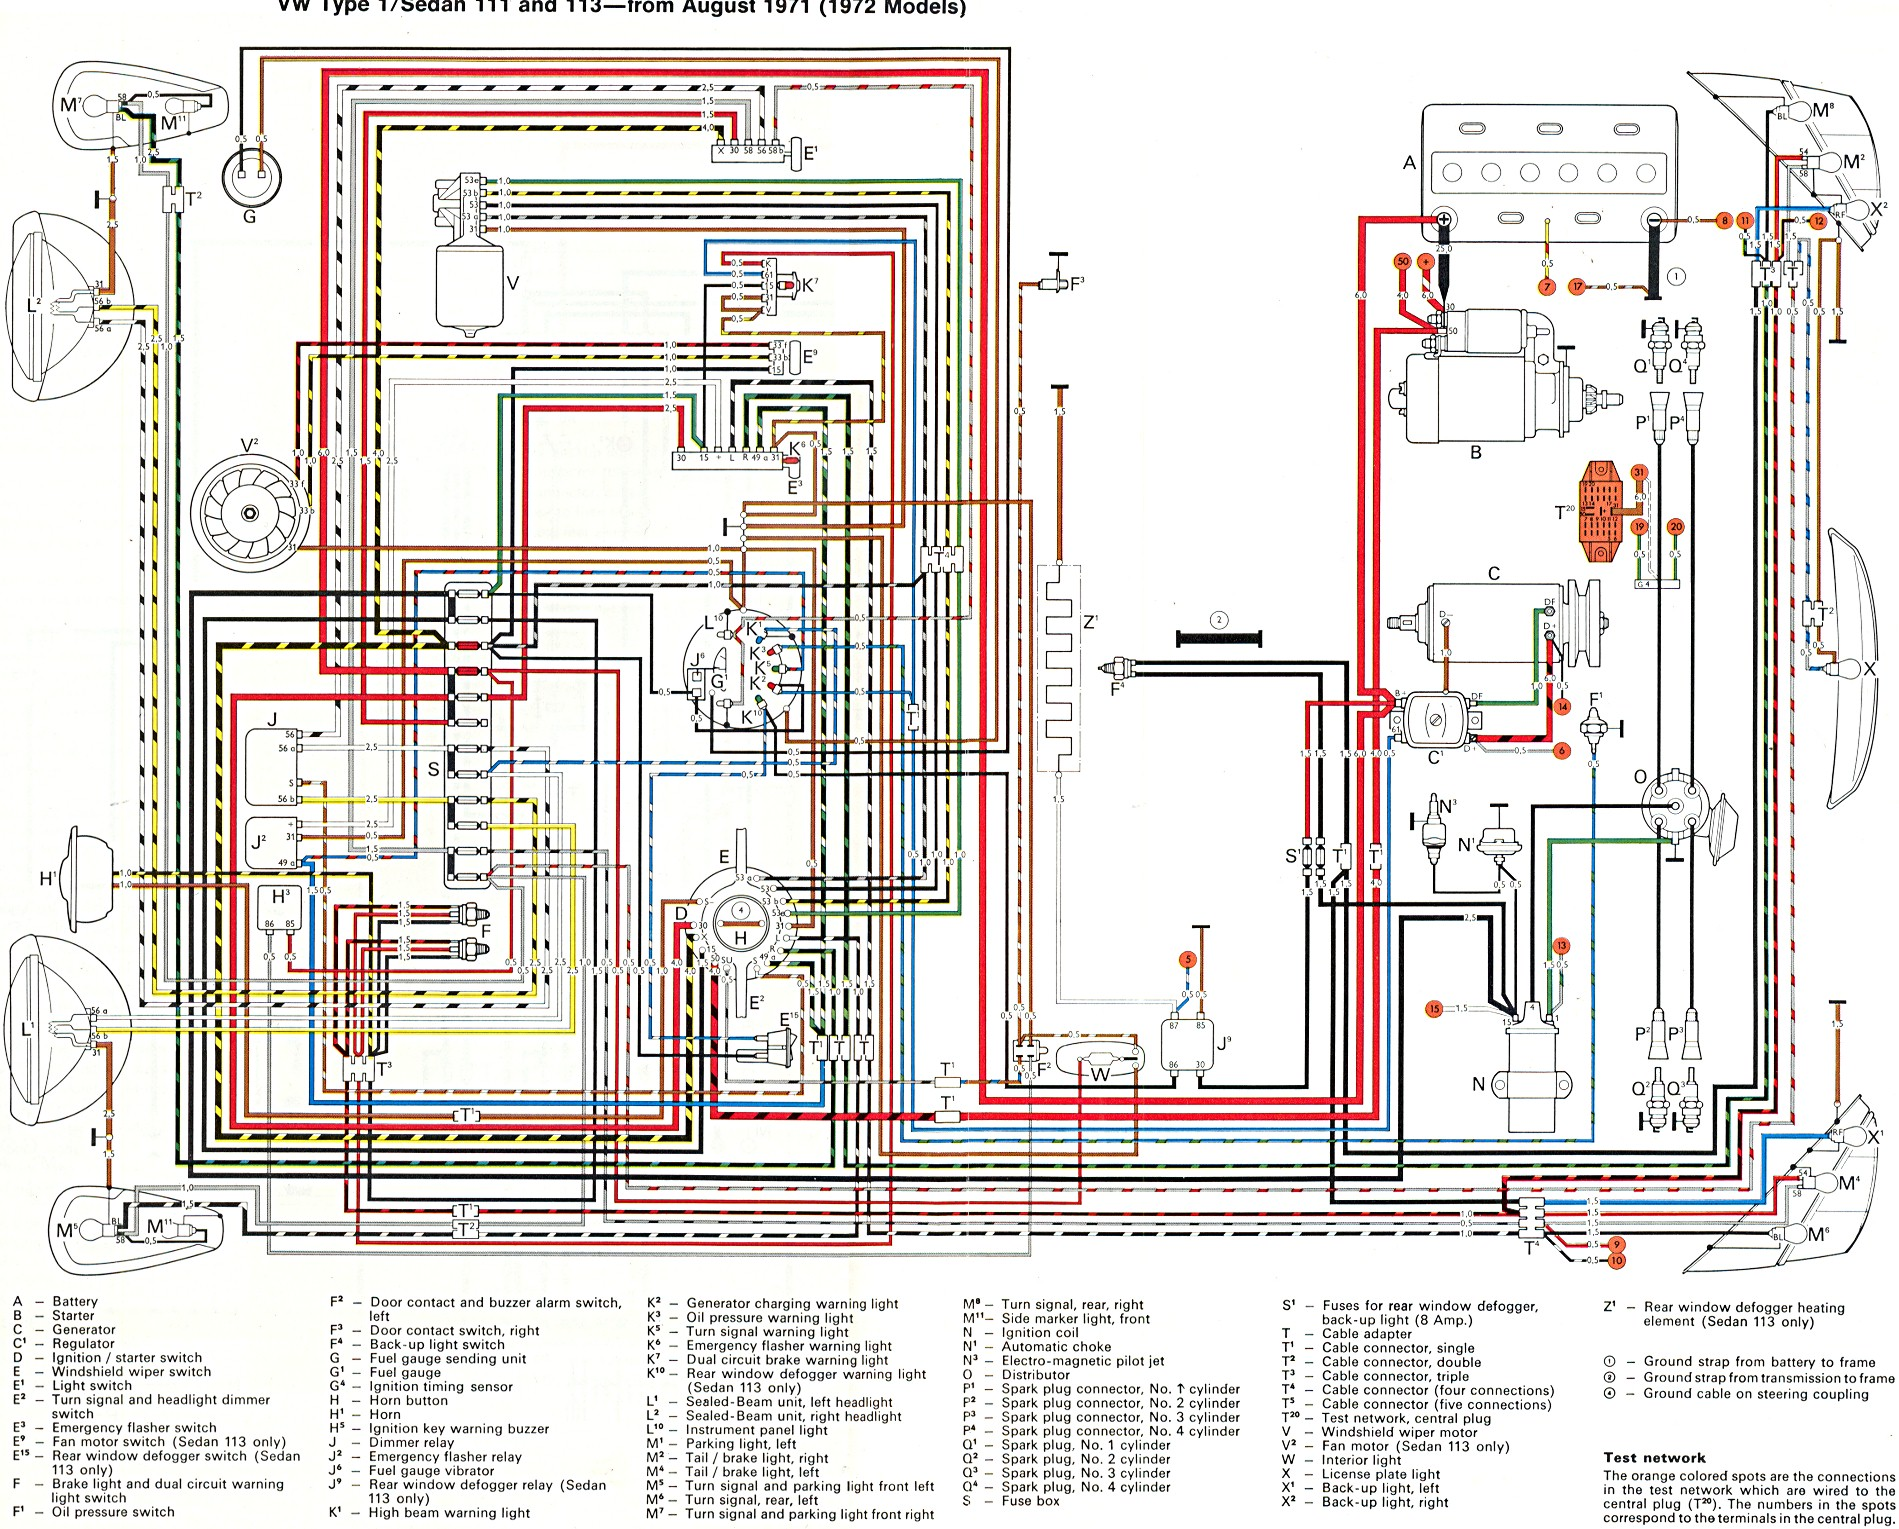 WRG-7511] 4 Best Images Of 72 Vw Beetle Wiring Diagram on